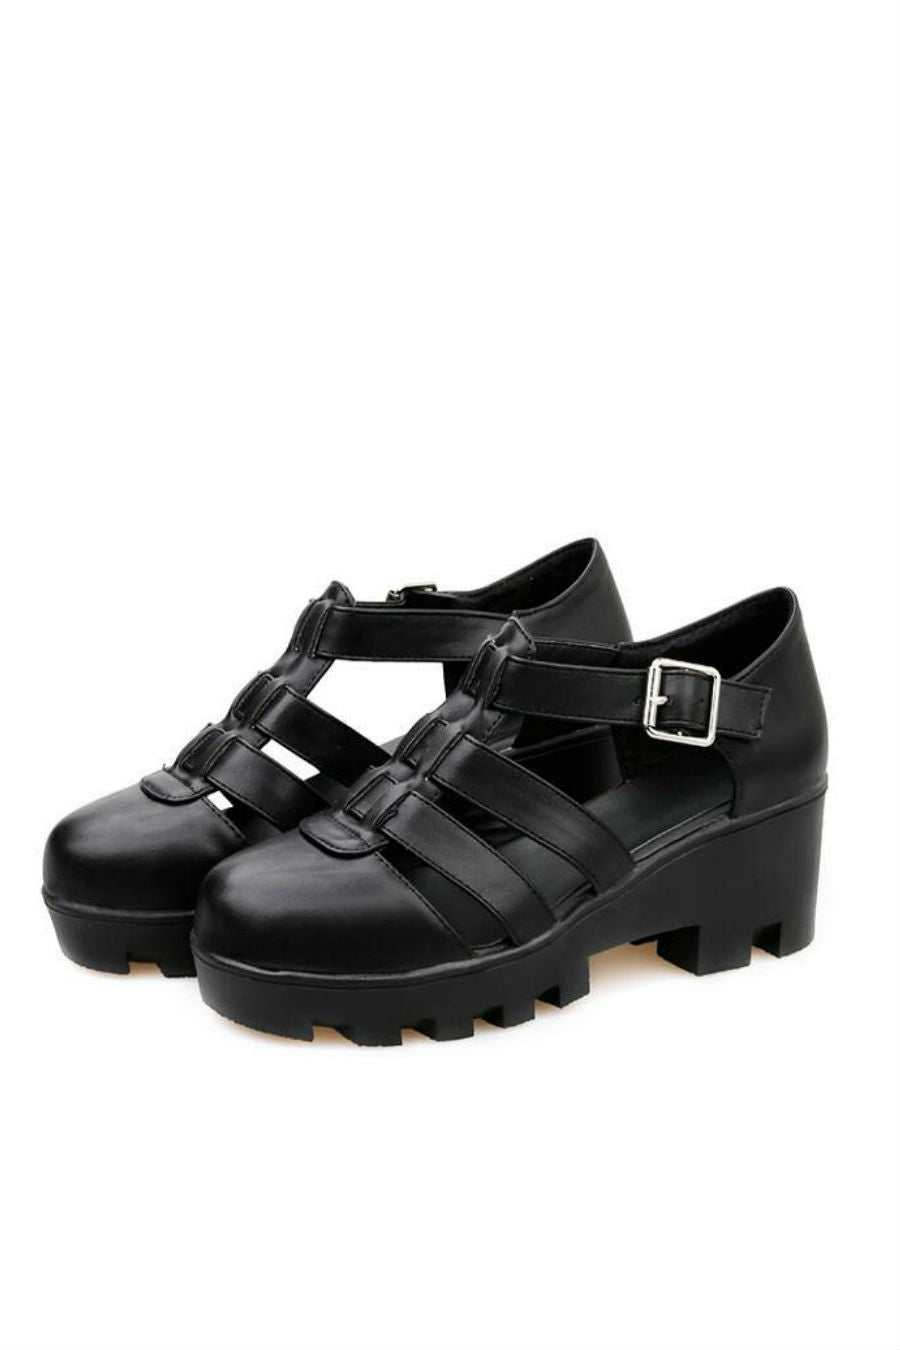 Black Hollow Out Strap Sandals